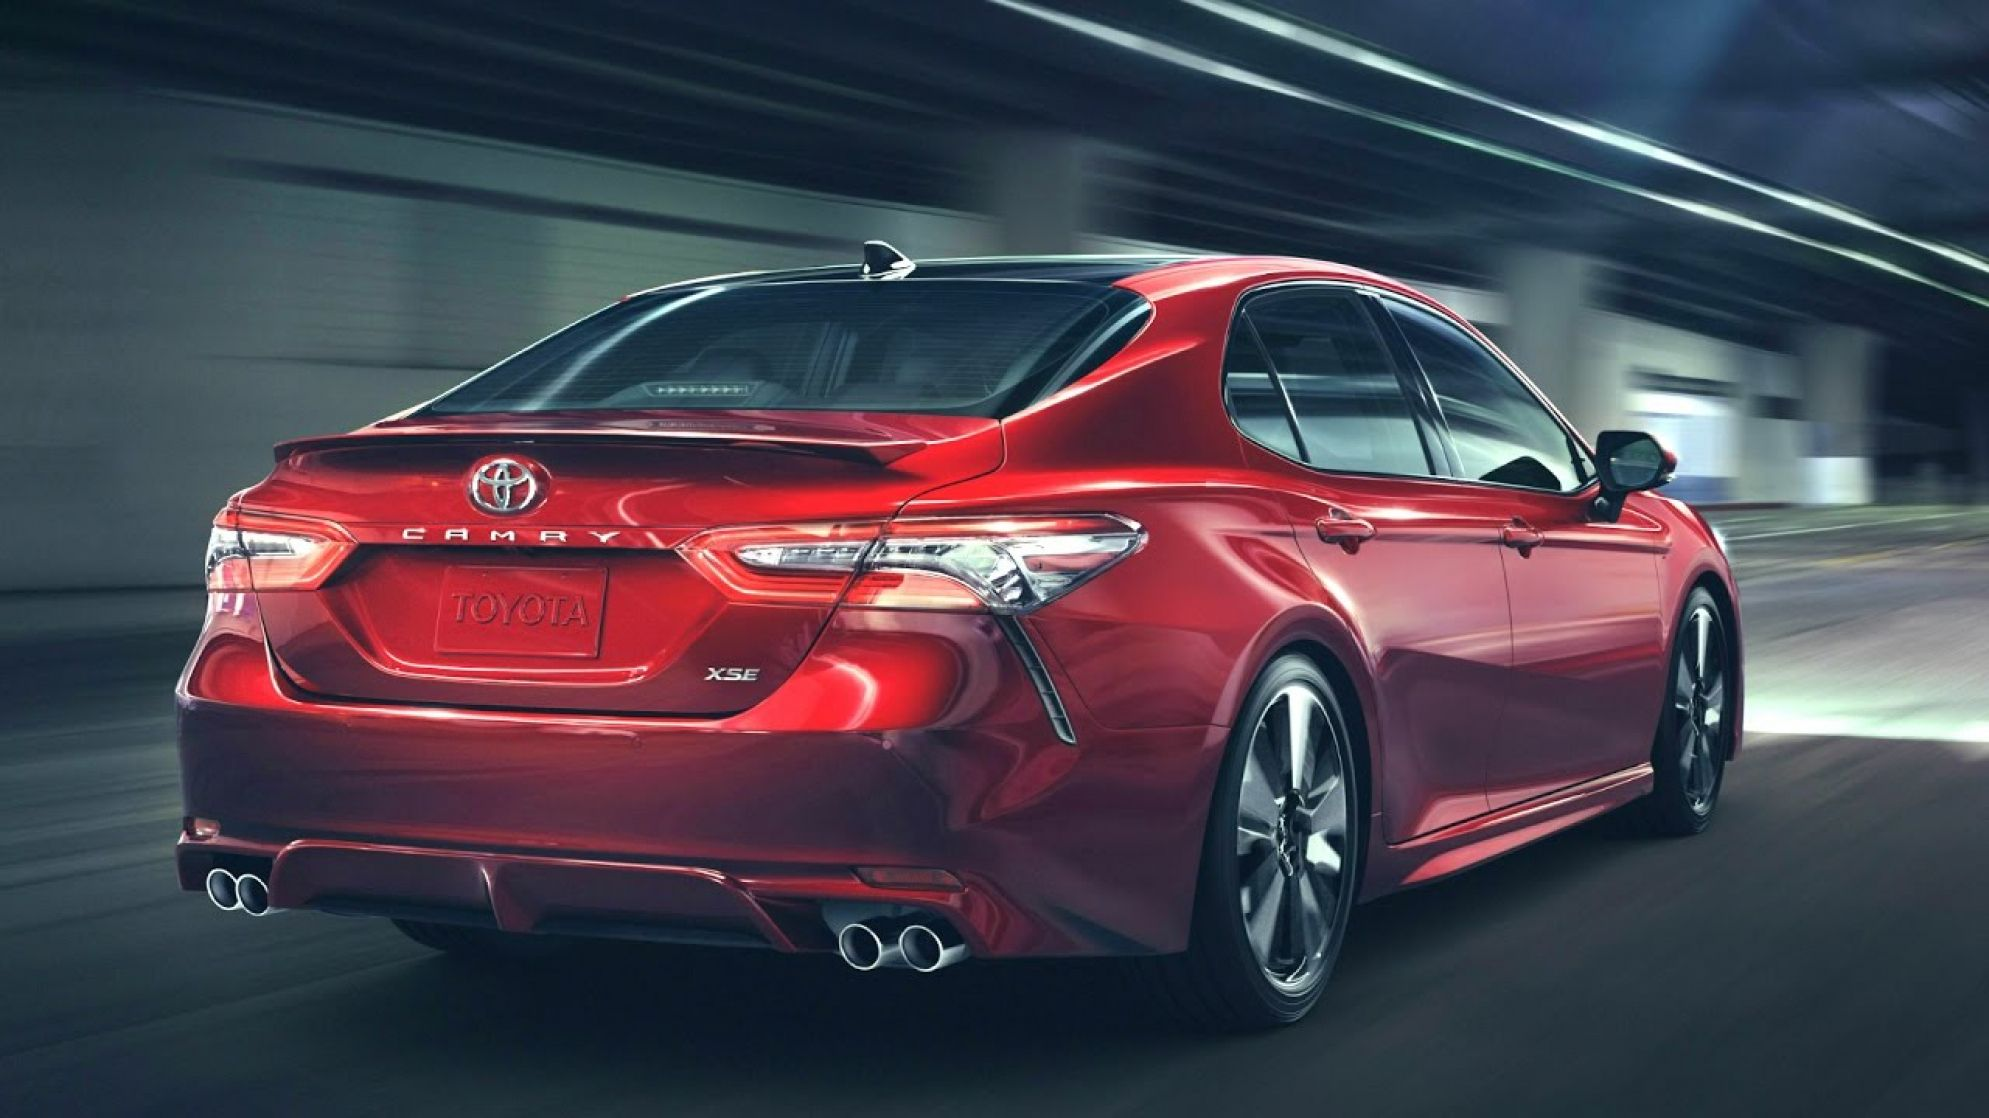 2018 Toyota Camry Exterior Android Wallpaper Camry Toyota Camry Toyota